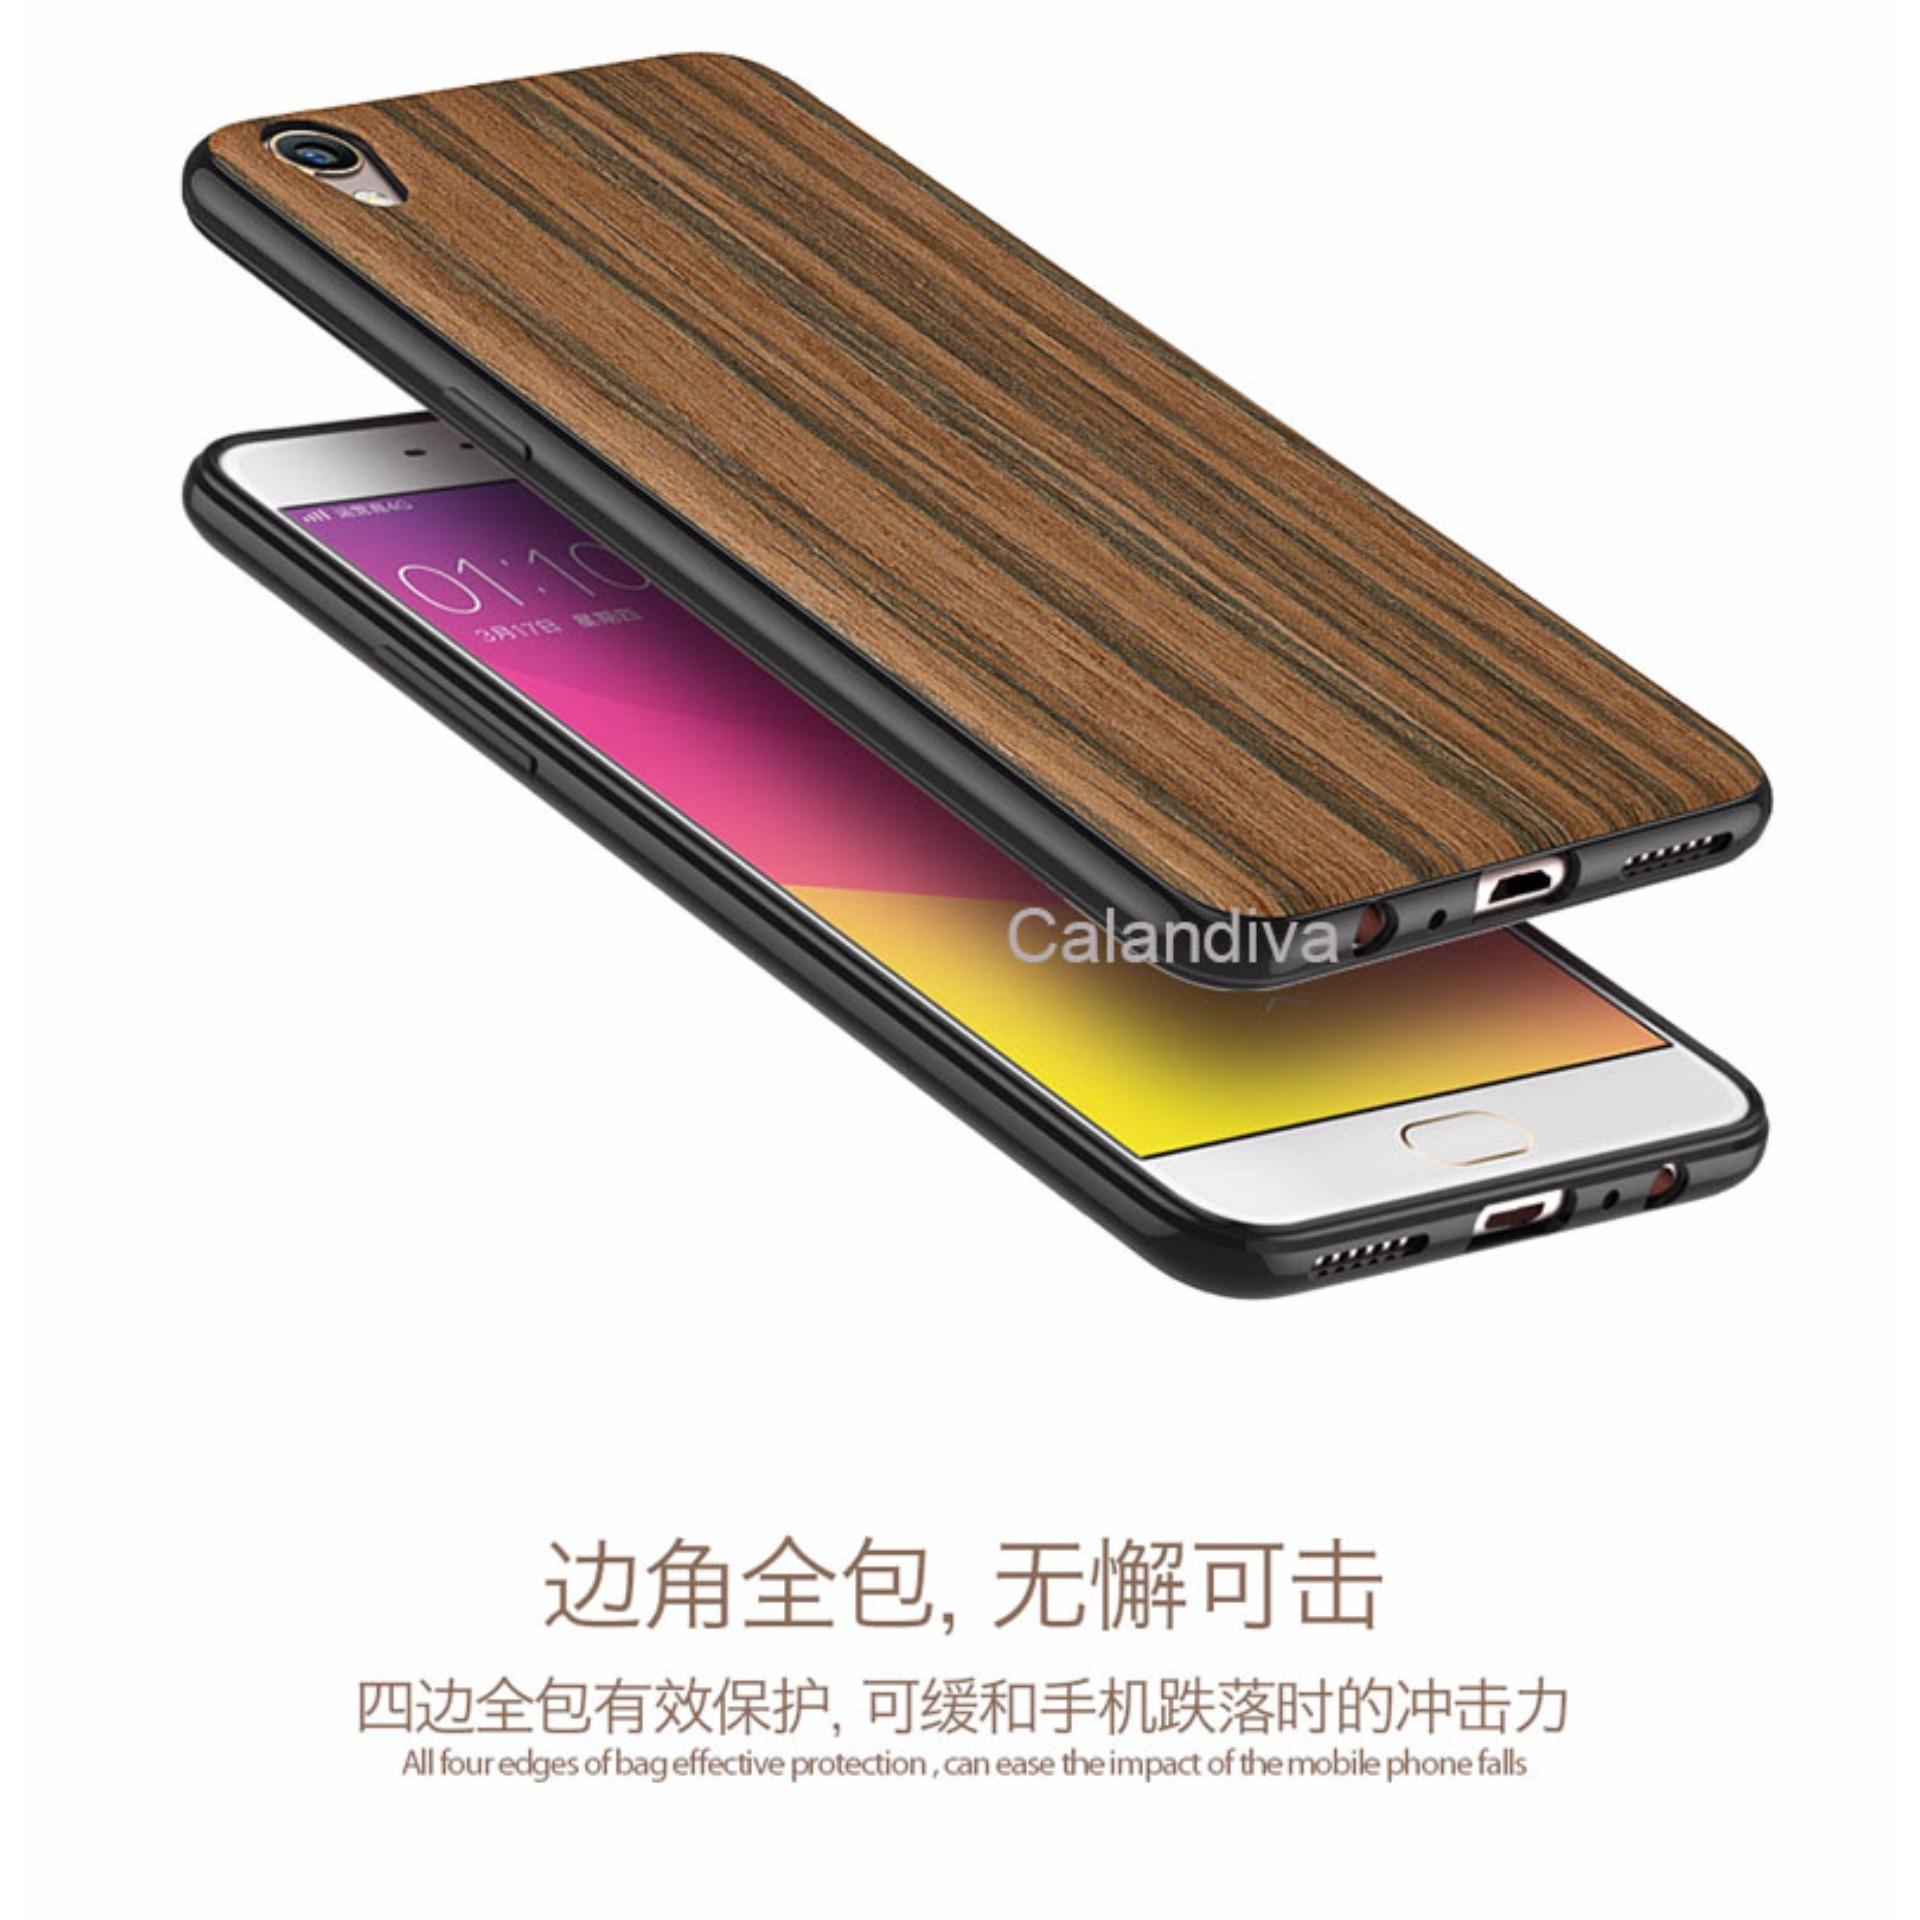 Calandiva Wood Texture Slim Softcase for Oppo F1 Plus / R9 - Coklat .